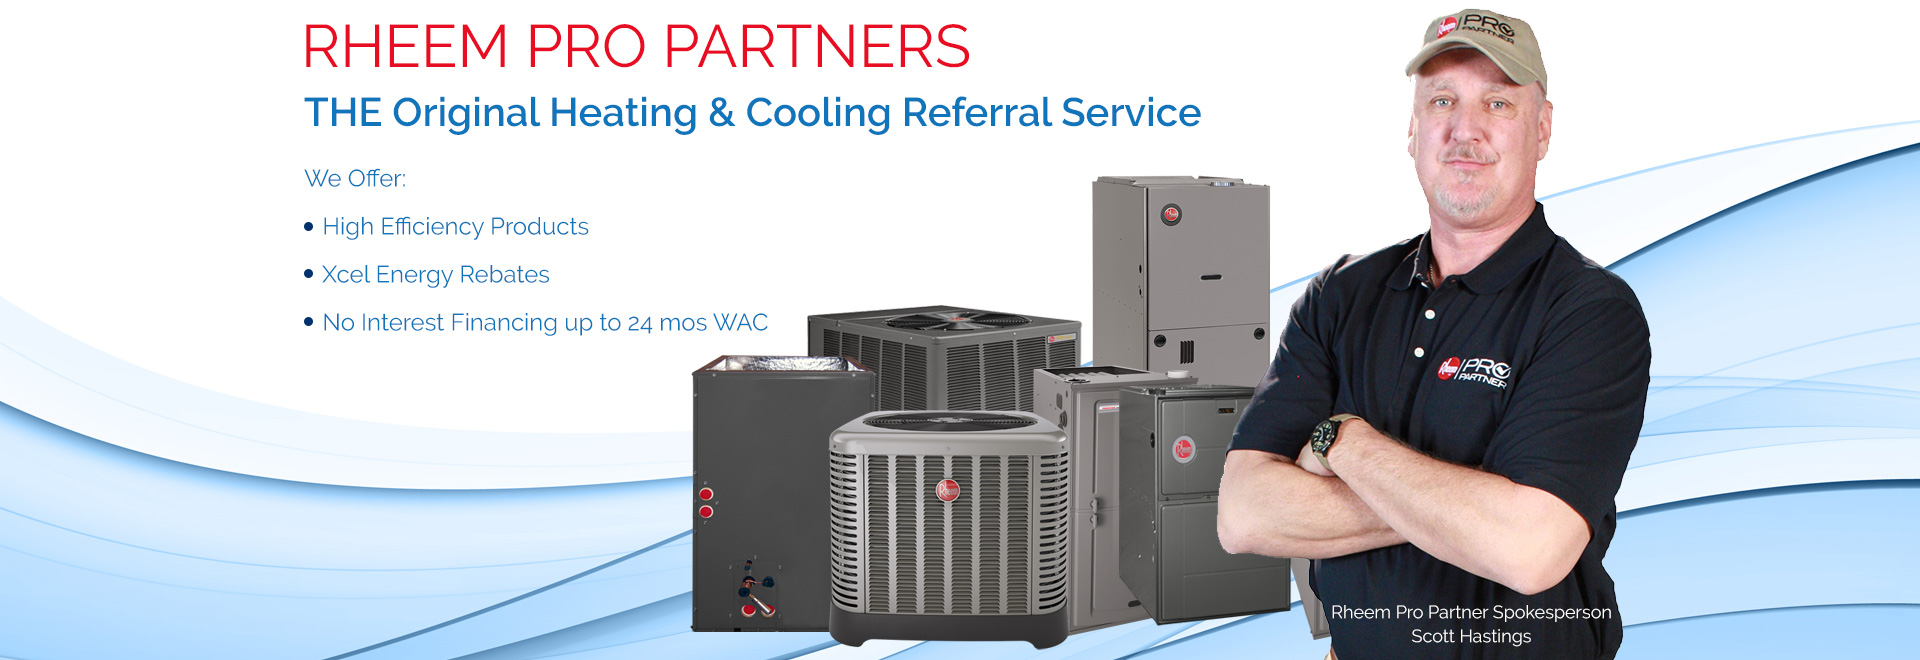 The Original Heating & Cooling Referral Service